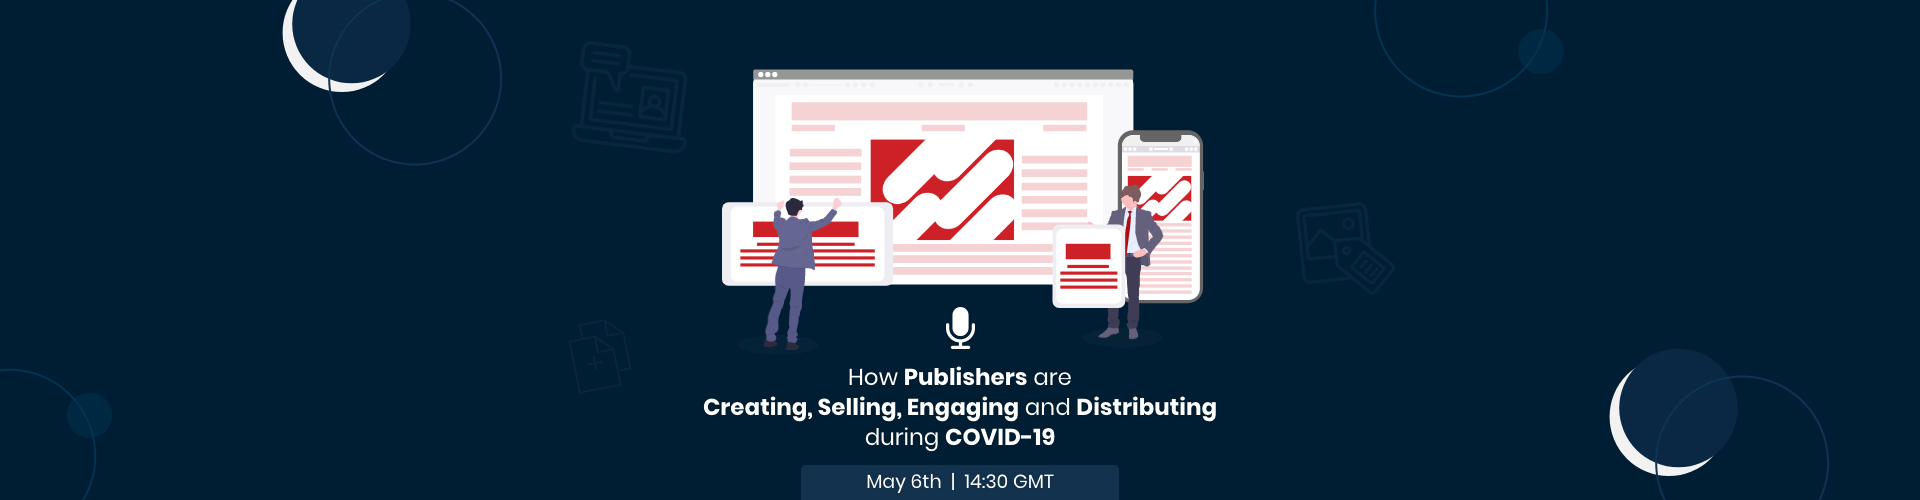 Header image of WEBINAR: How Publishers are Creating, Selling, Engaging and Distributing during COVID-19